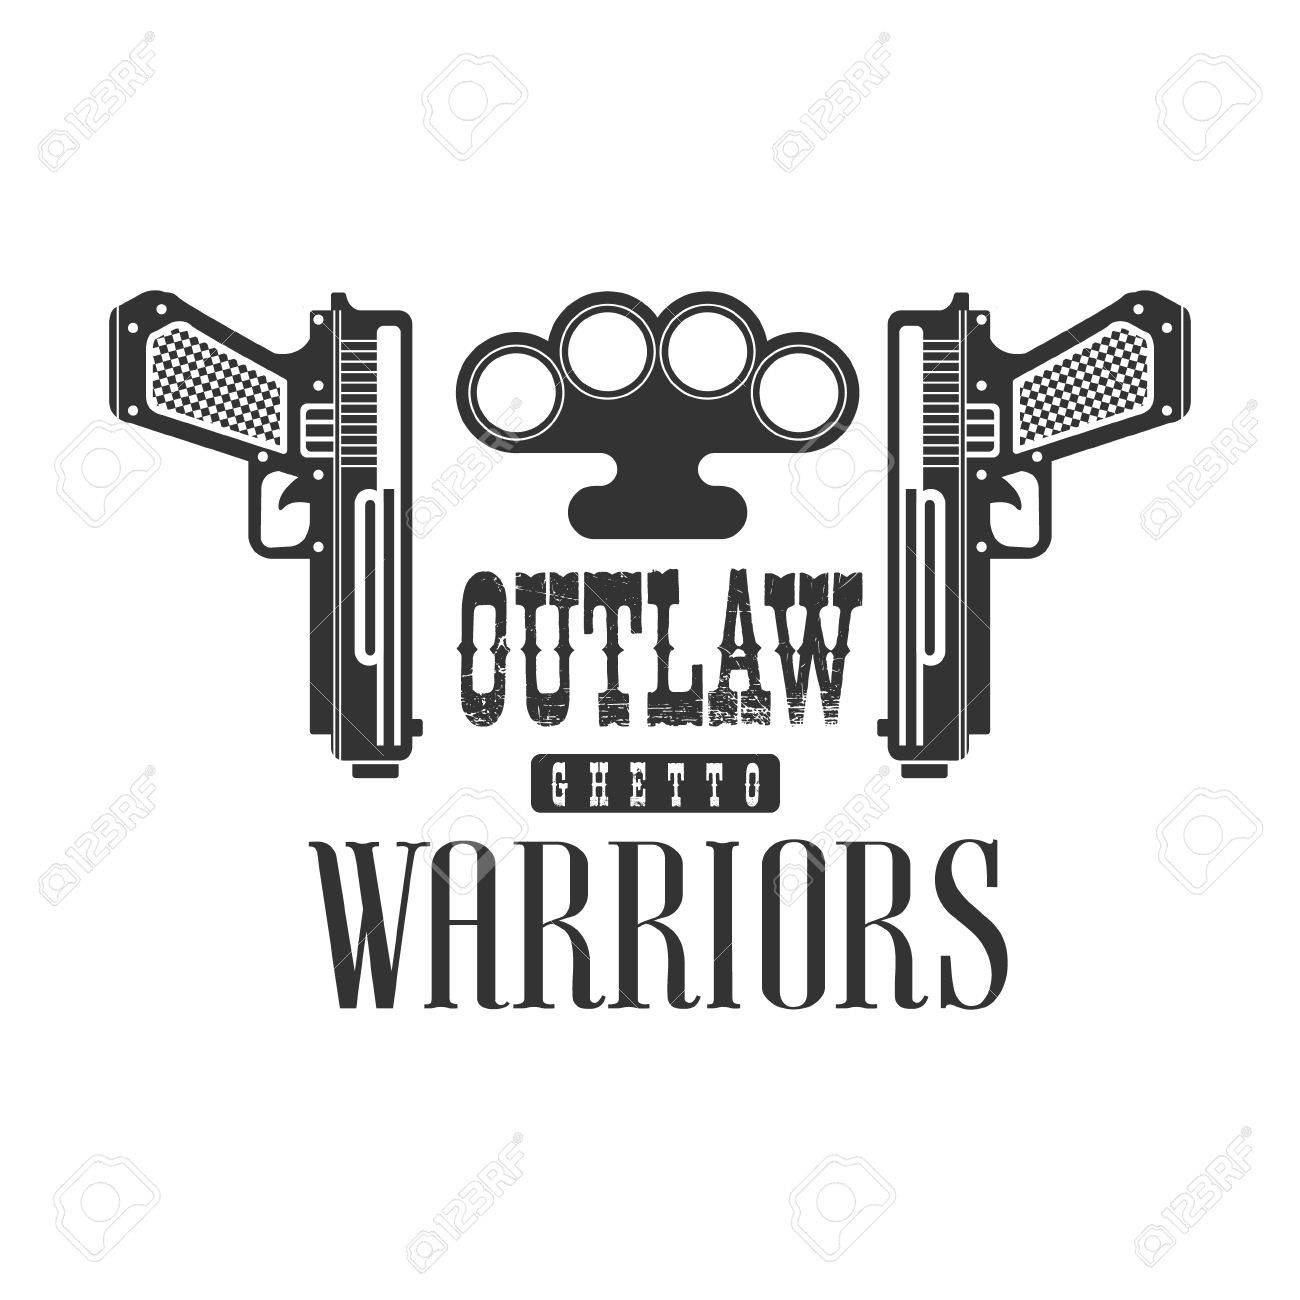 Criminal outlaw street club black and white sign design template criminal outlaw street club black and white sign design template with text guns and brass biocorpaavc Images